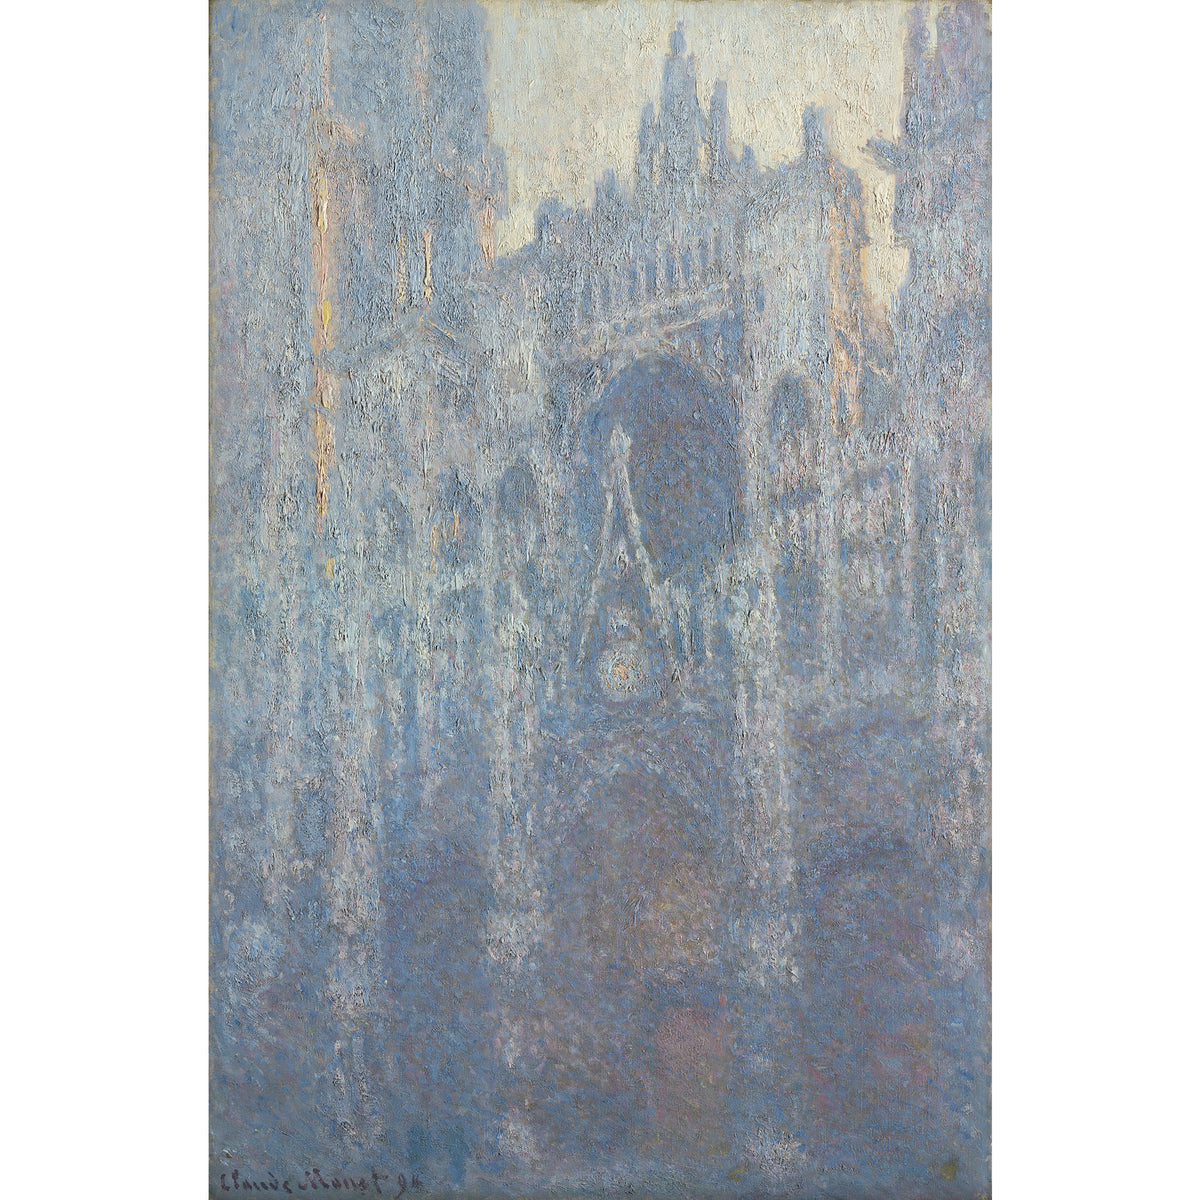 Monet-The Portal of Rouen Cathedral in Morning Light-Inspiration Artwork for earrings | Getty Store